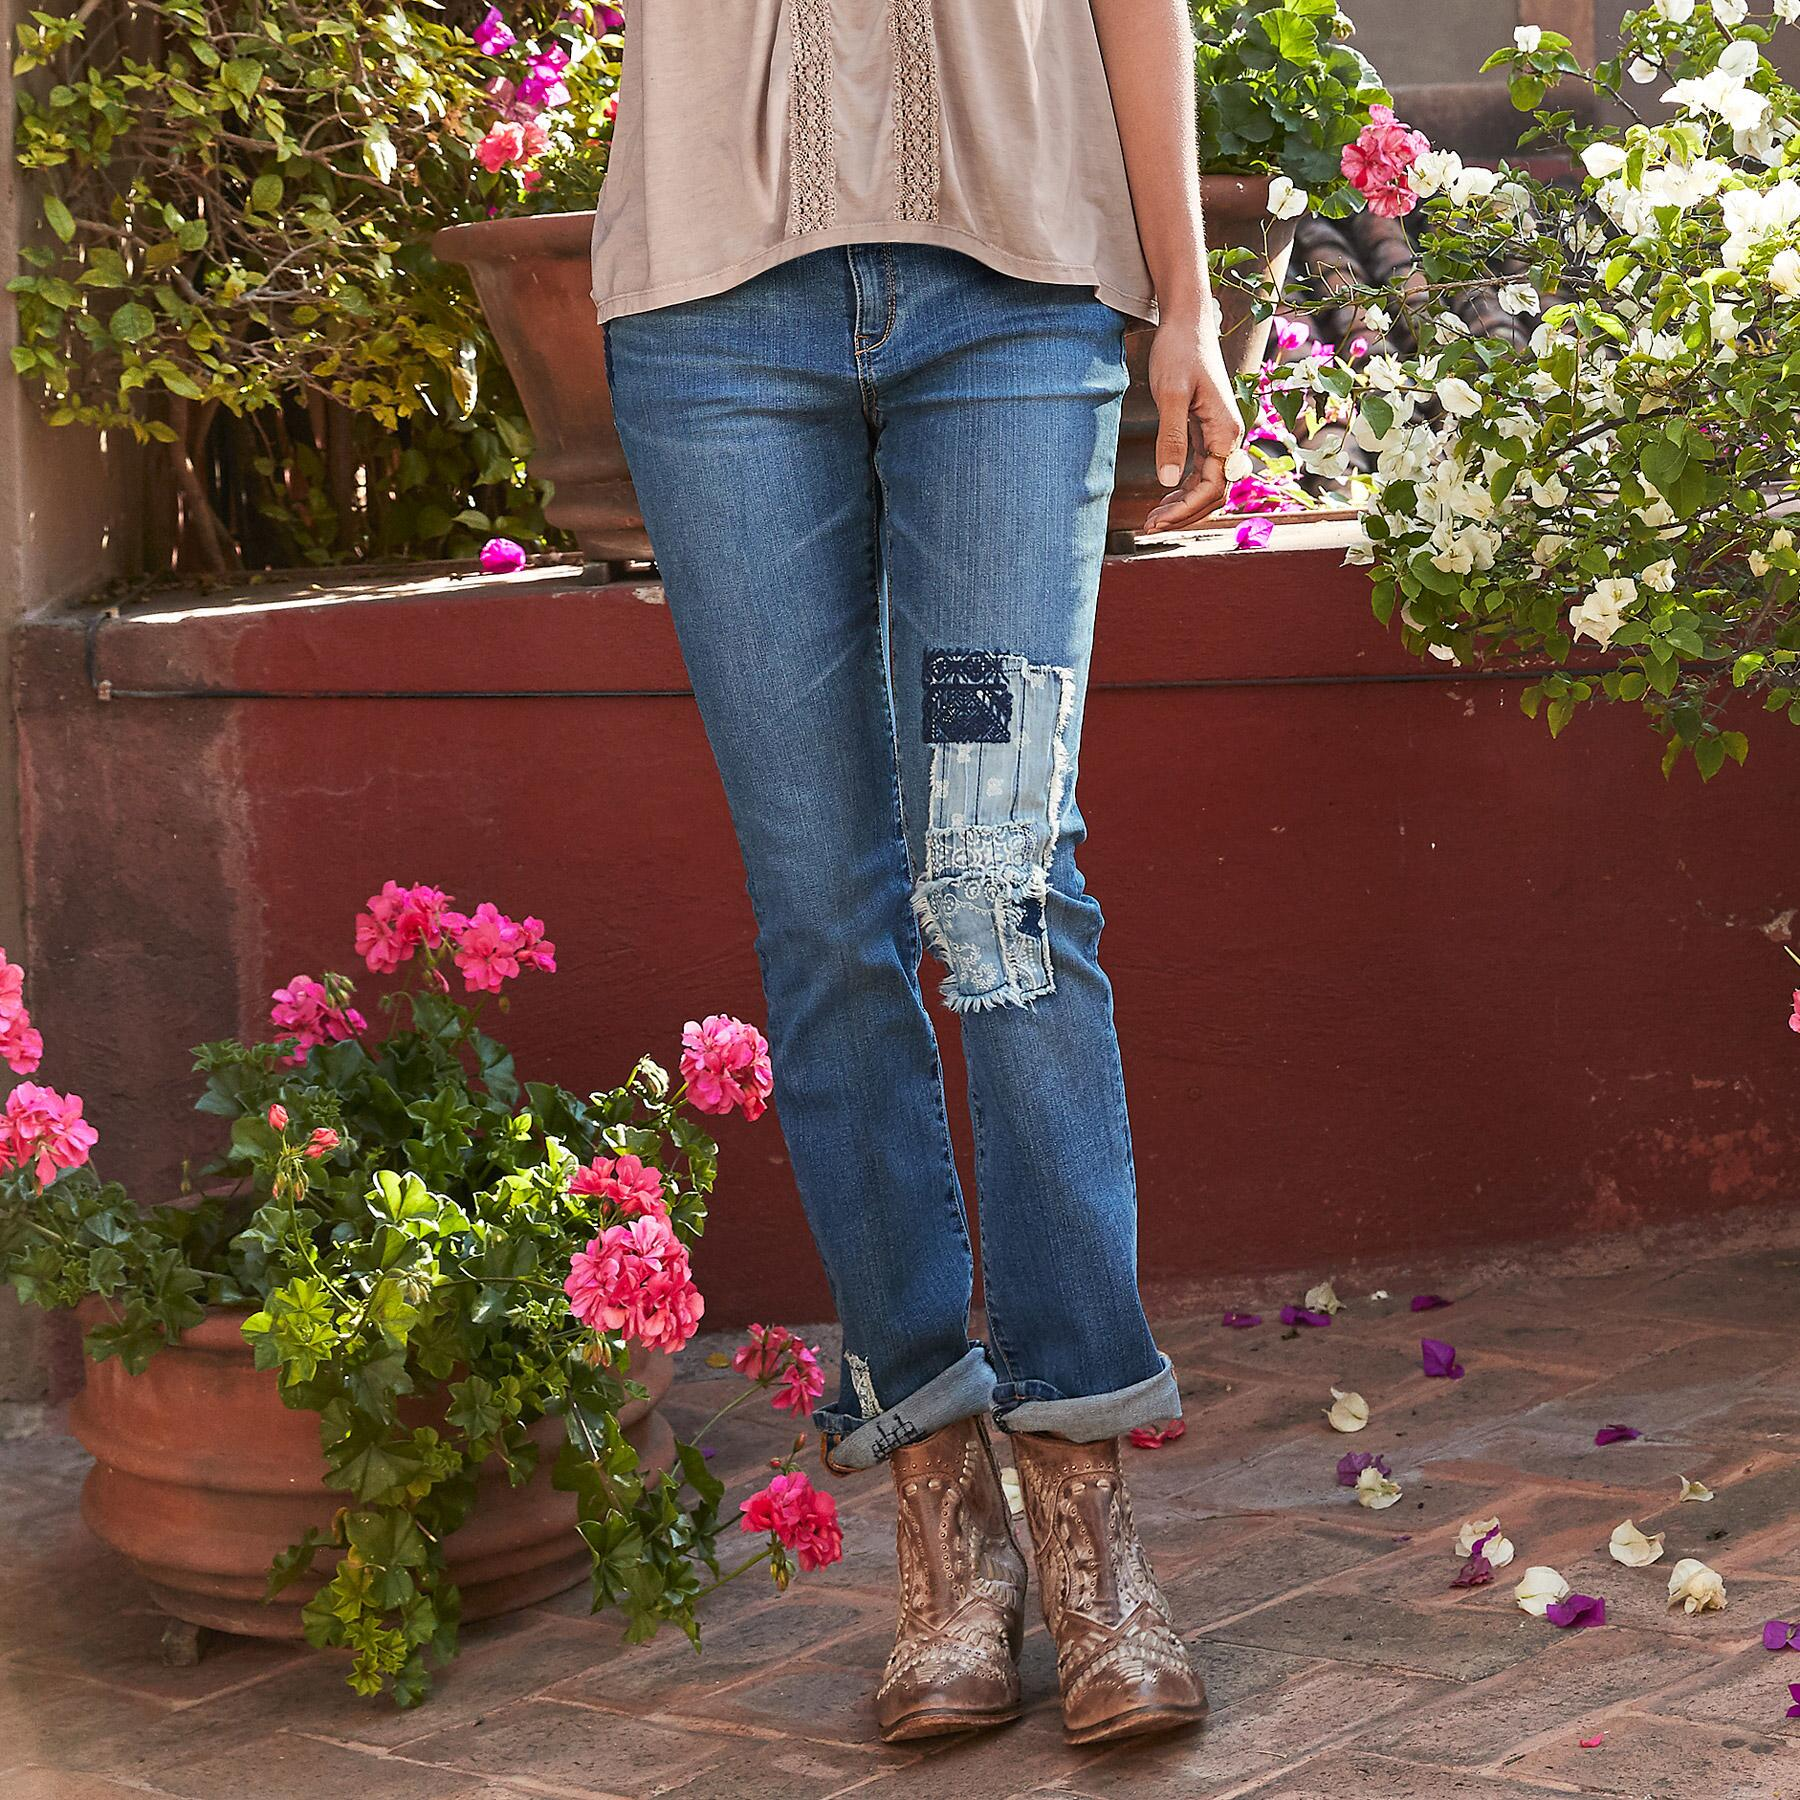 MAGNOLIA LOW COUNTRY JEANS: View 1